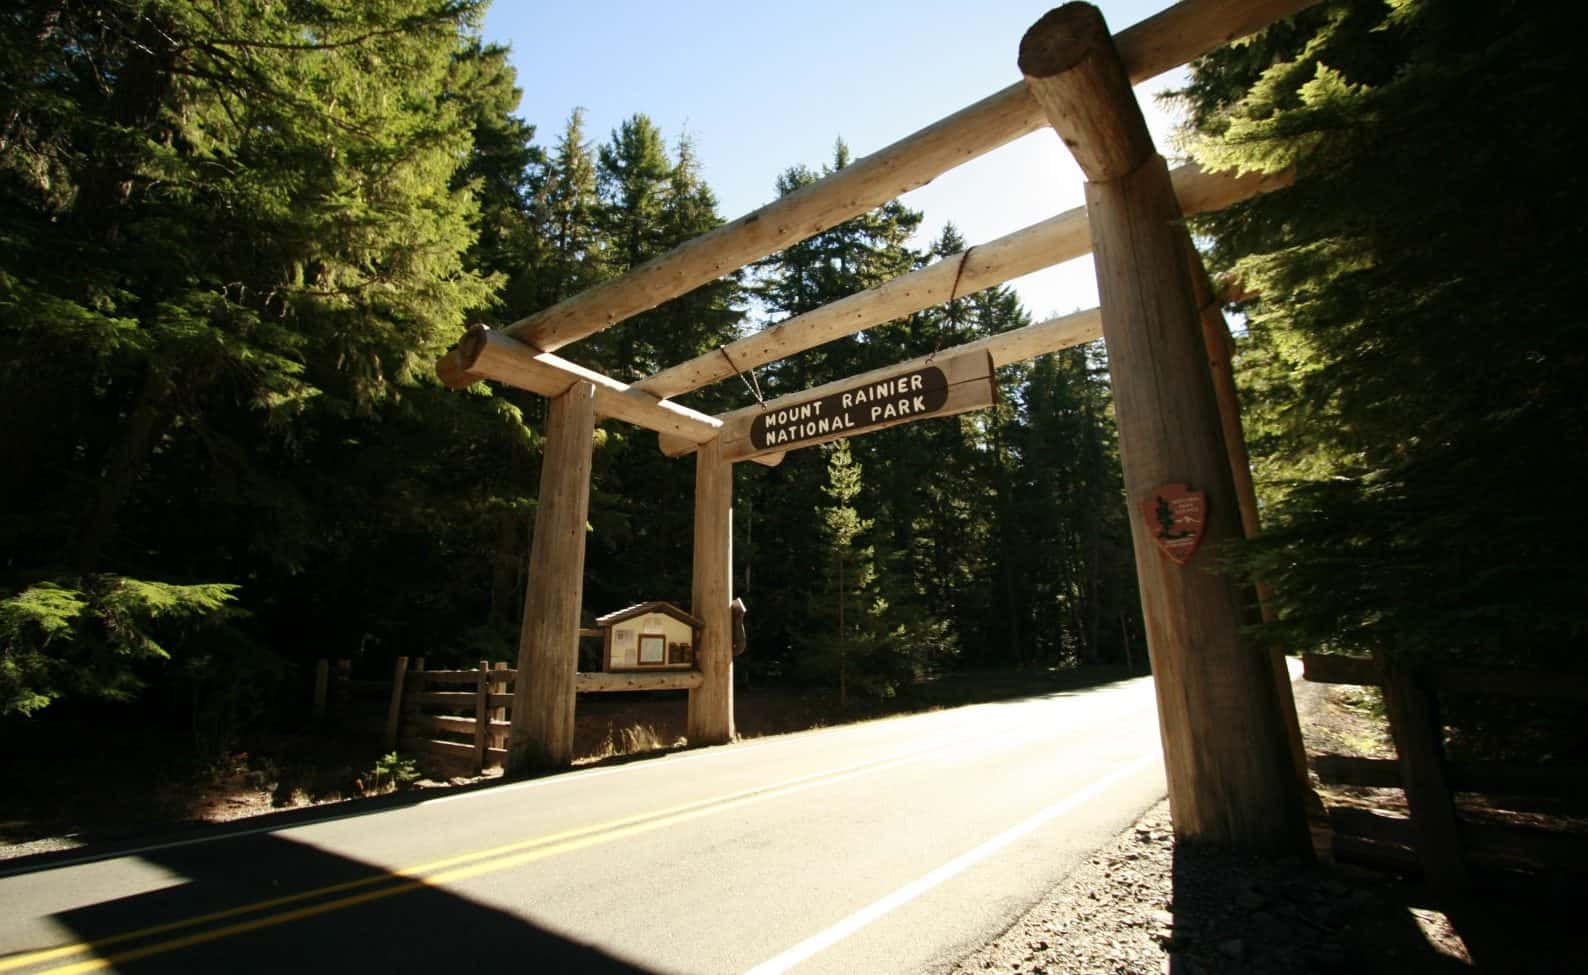 Entrance to Mount Rainier National Park